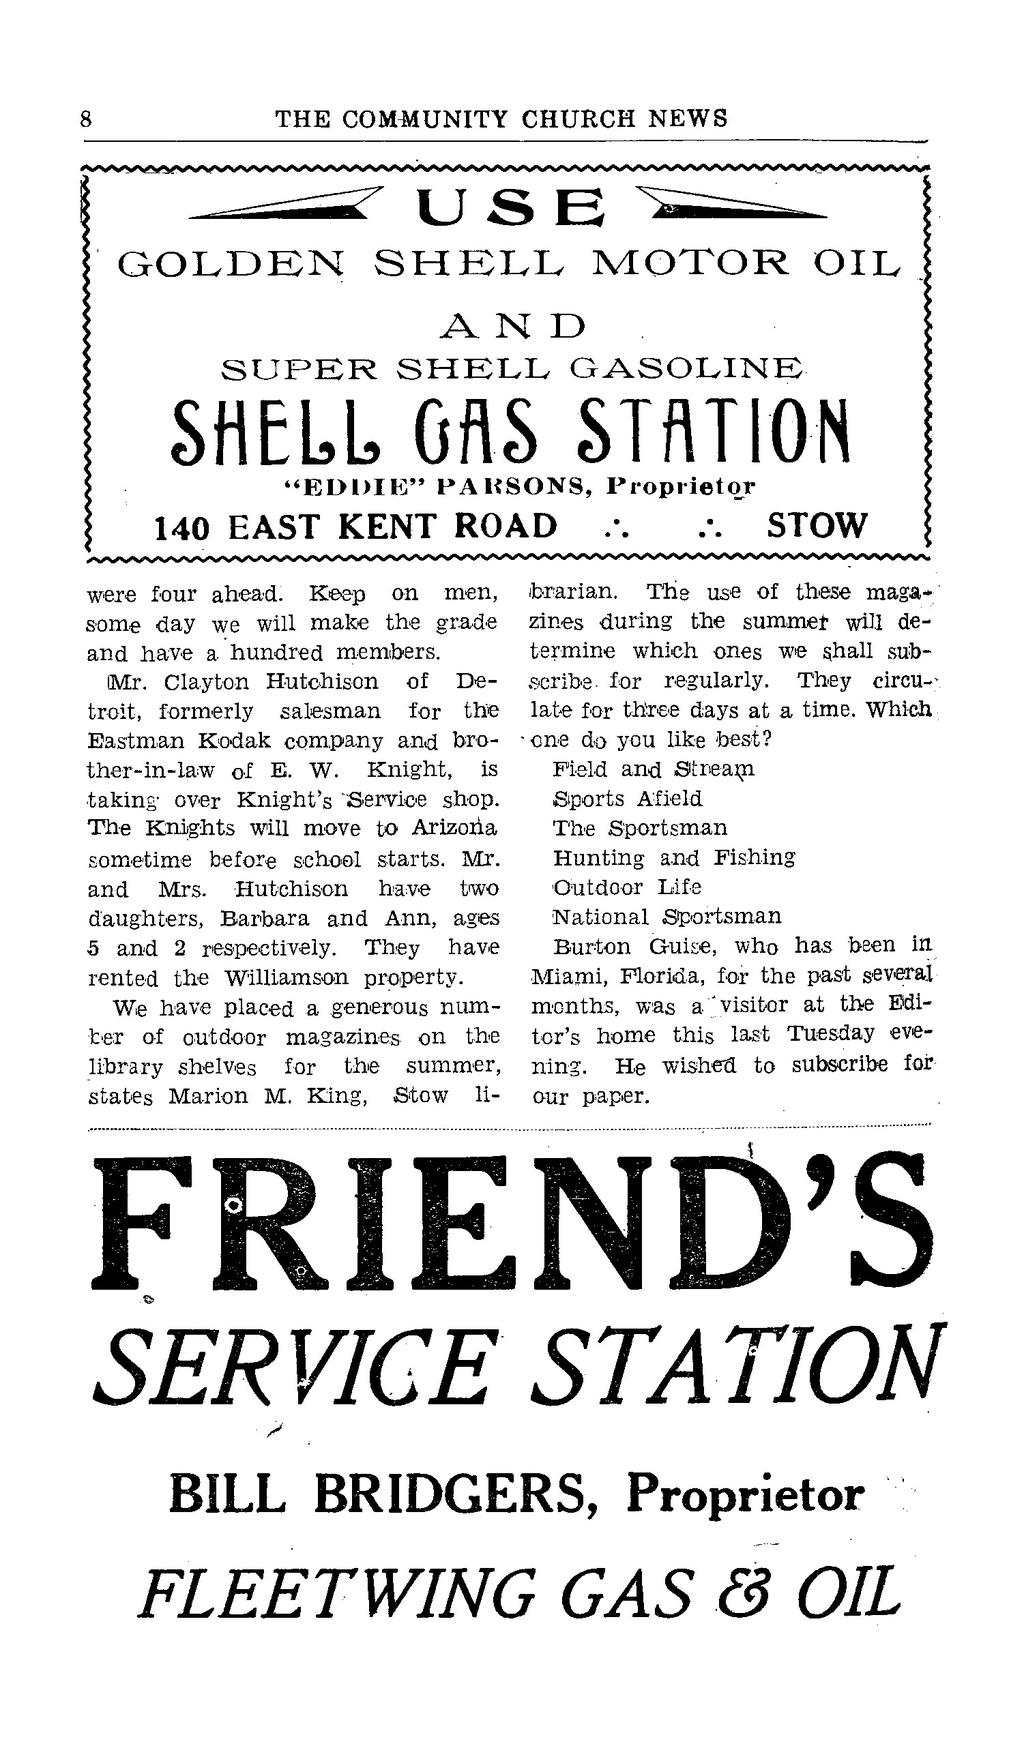 "290 THE COMMUNITY CHURCH NEWS K U S B GOLDEN SHELL MOTOR OIL A N D SUPER SHELL GASOLINE SHELL GflS ""EDDIE"" PAHSON8, STATION Proprietor 140 EAST KENT ROAD STOW were four ahead. Keep on men, brarian."